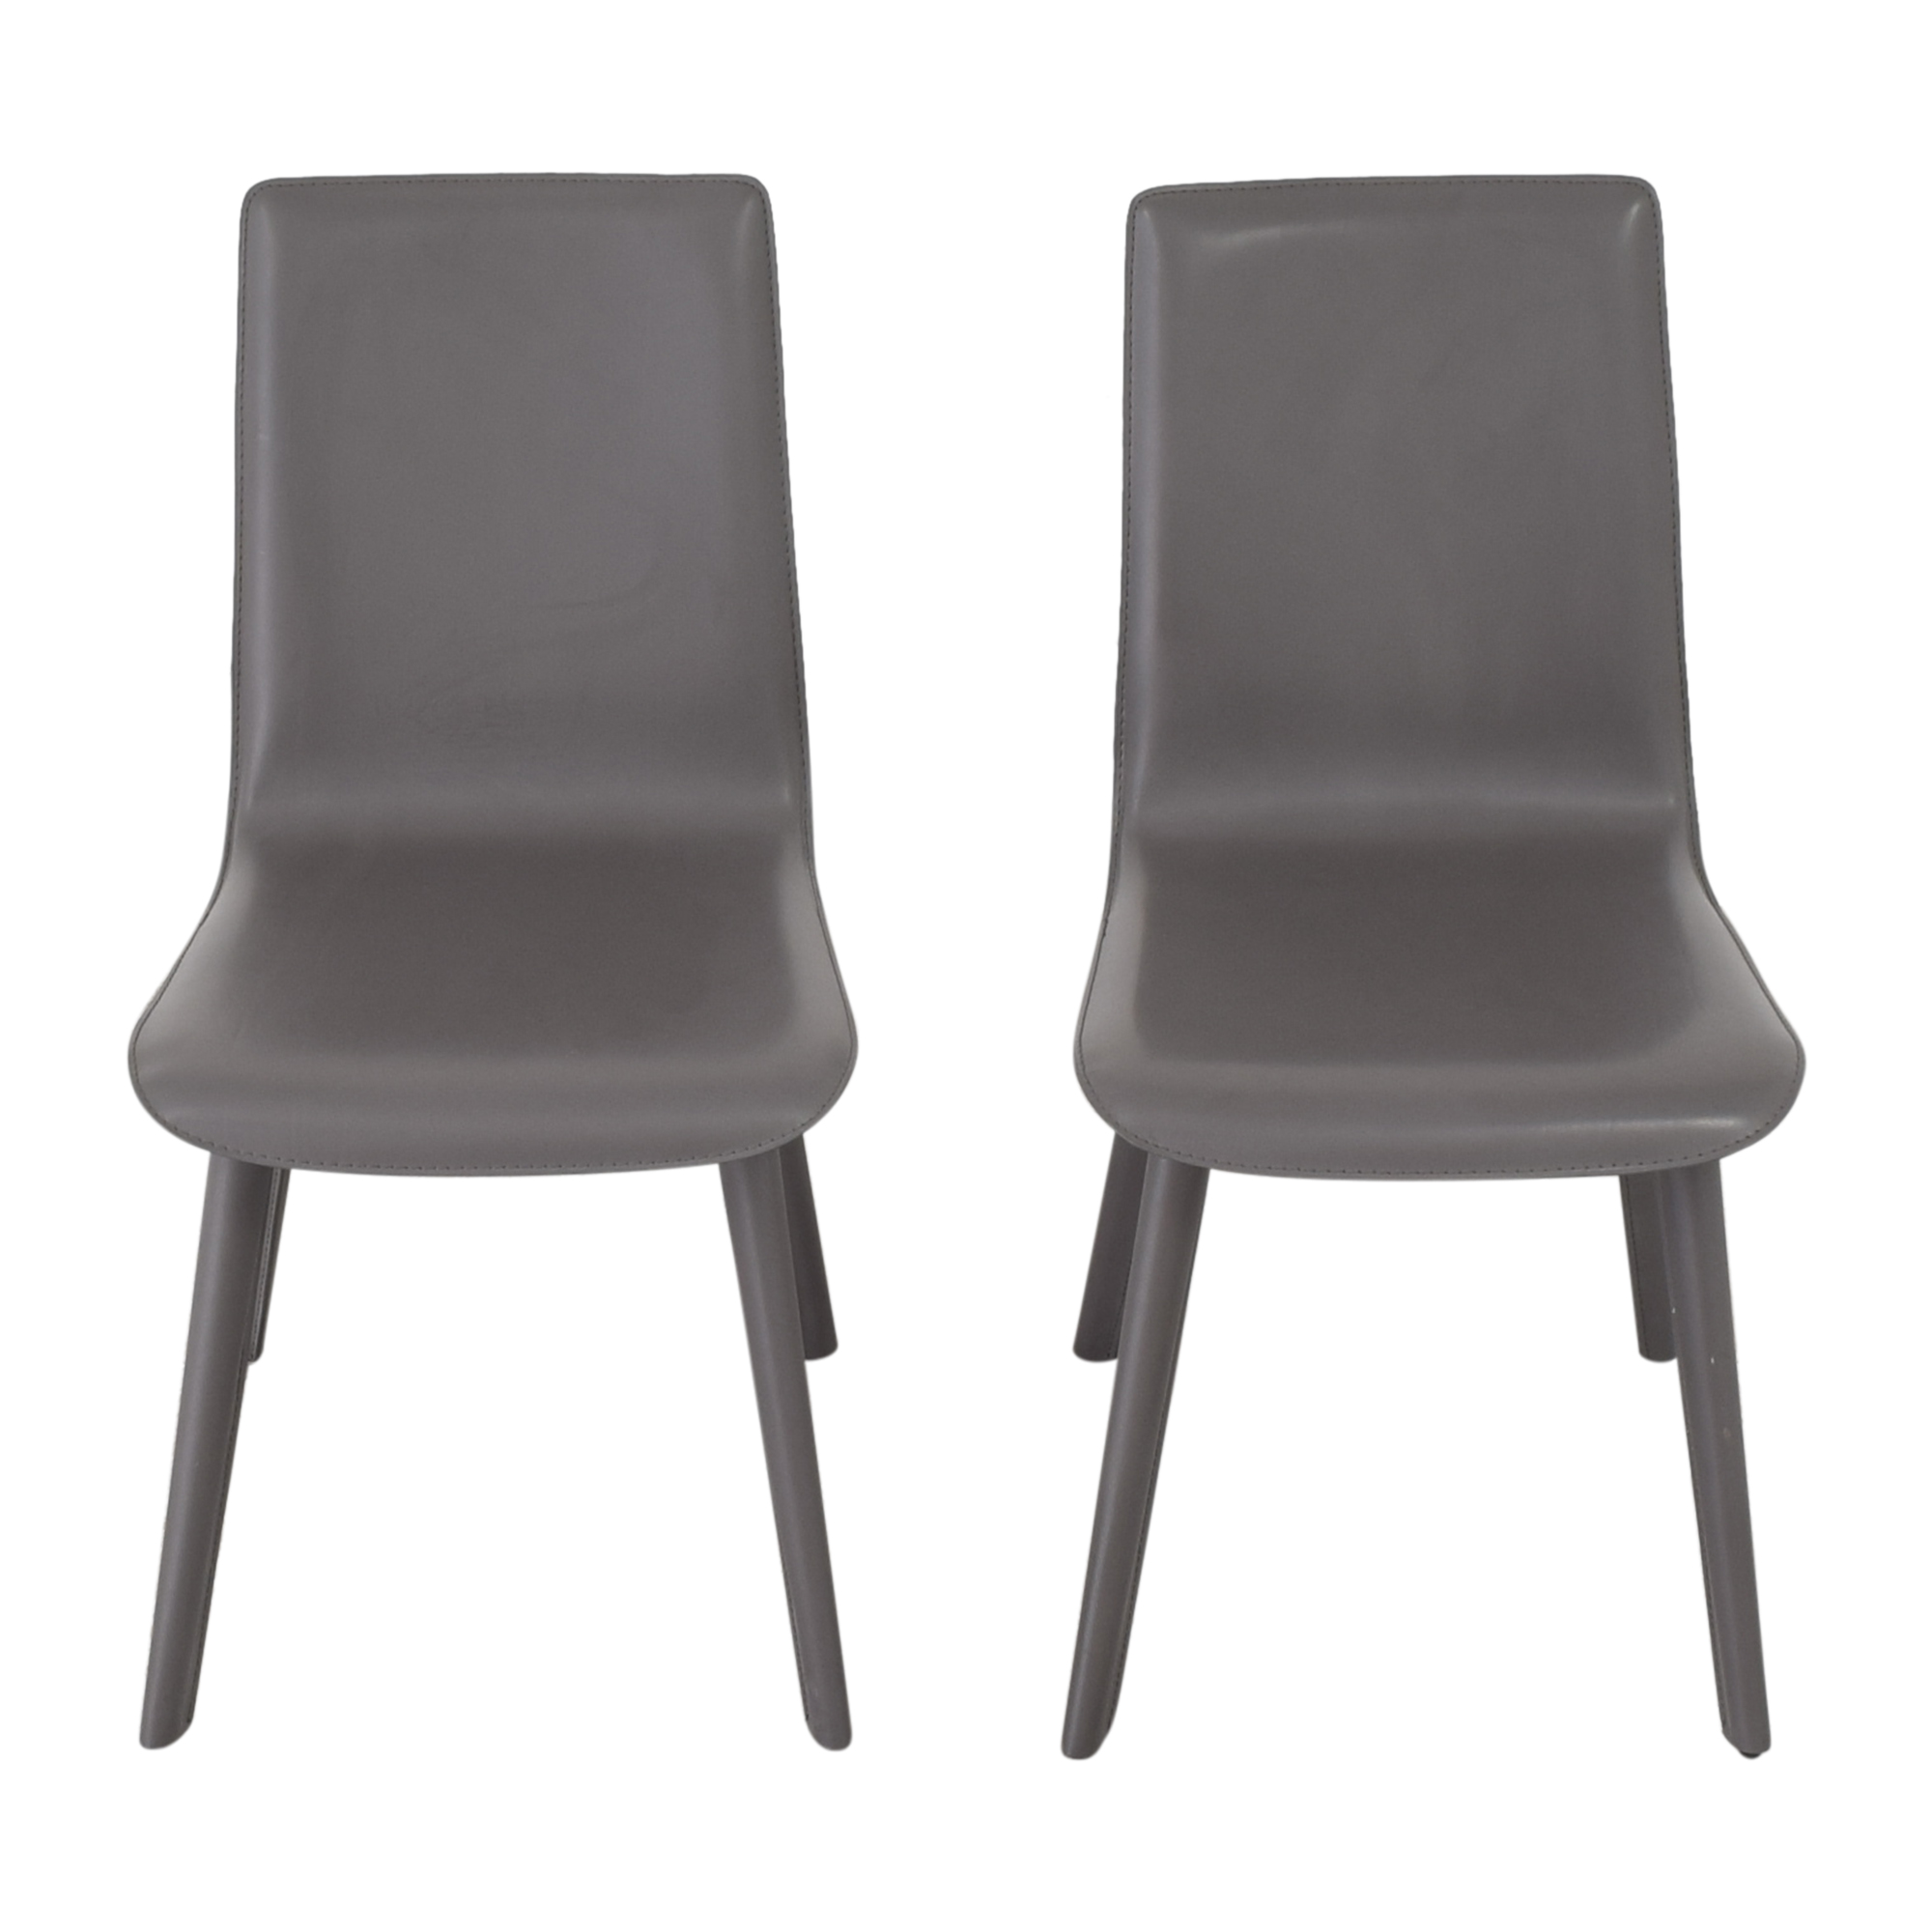 Room & Board Hirsch Dining Chairs Room & Board